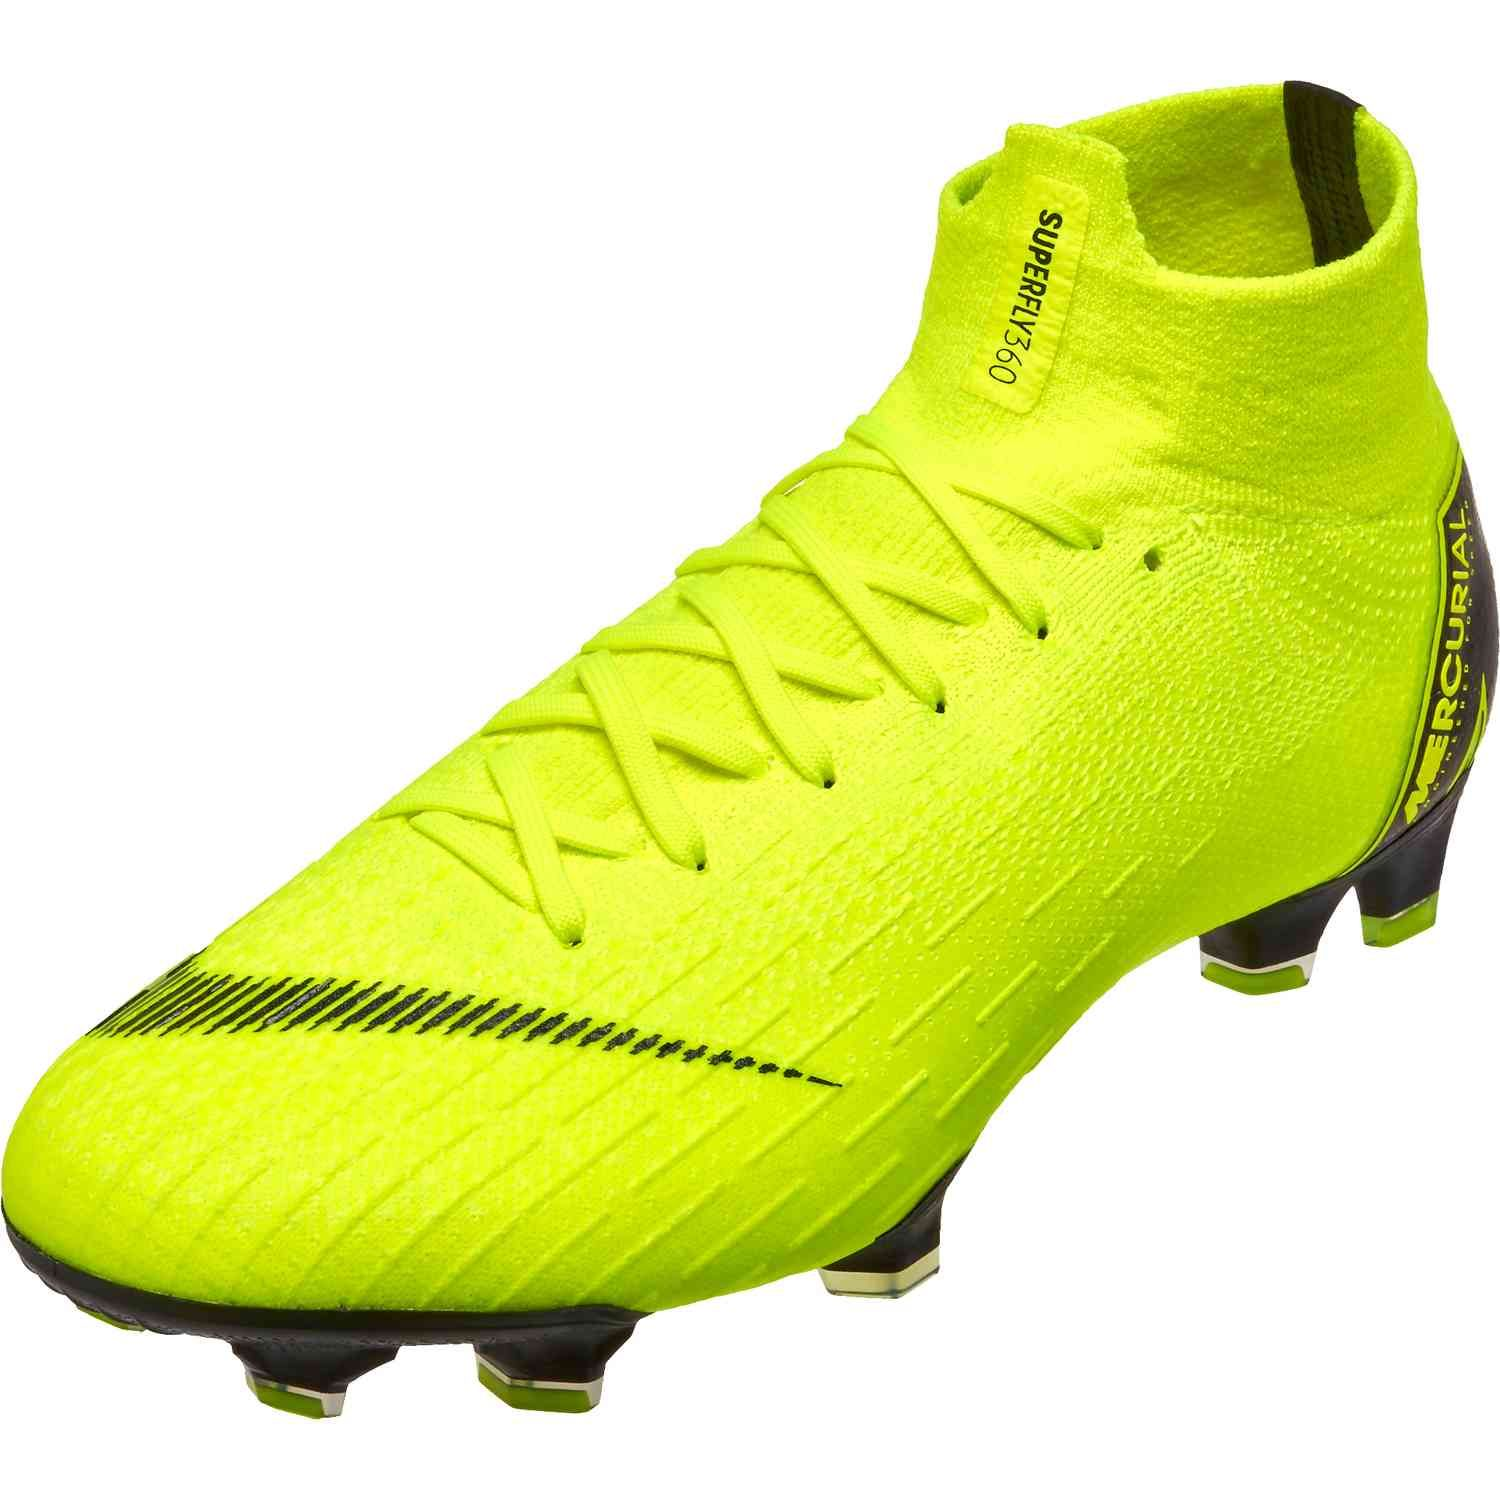 online store 4e84e 3d0bf Nike Mercurial Superfly 6 Elite FG – Volt/Black | Steals and ...